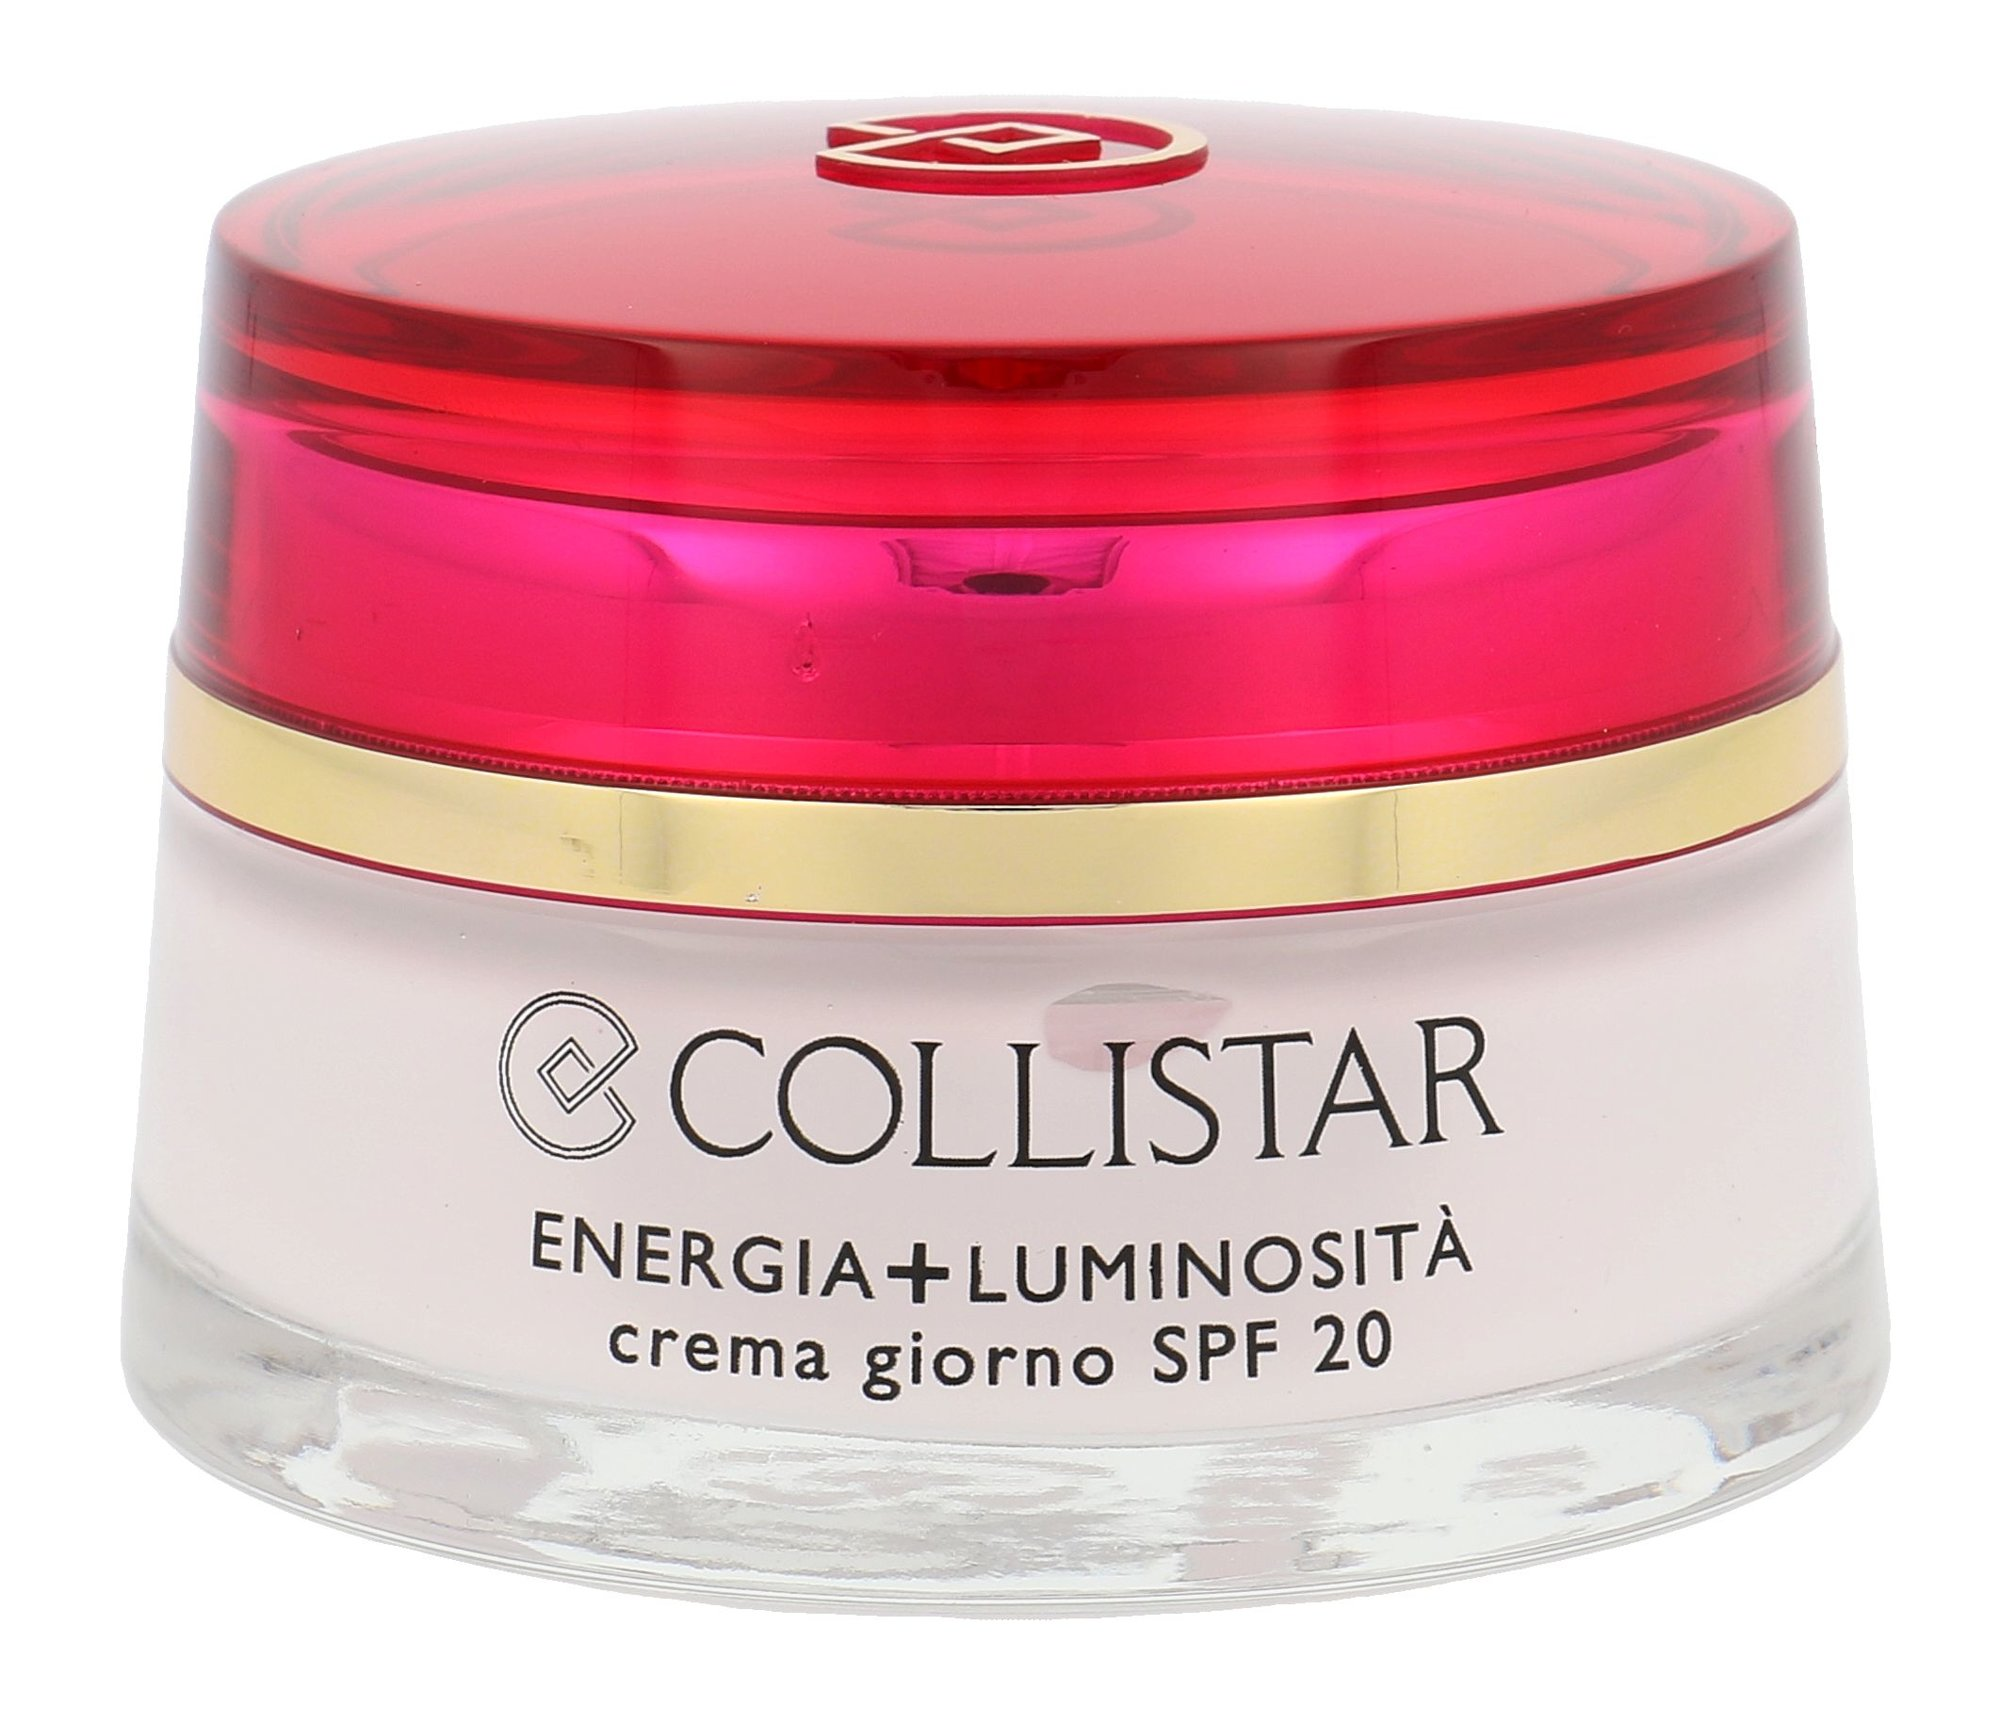 Collistar Special First Wrinkles Day Cream 50ml